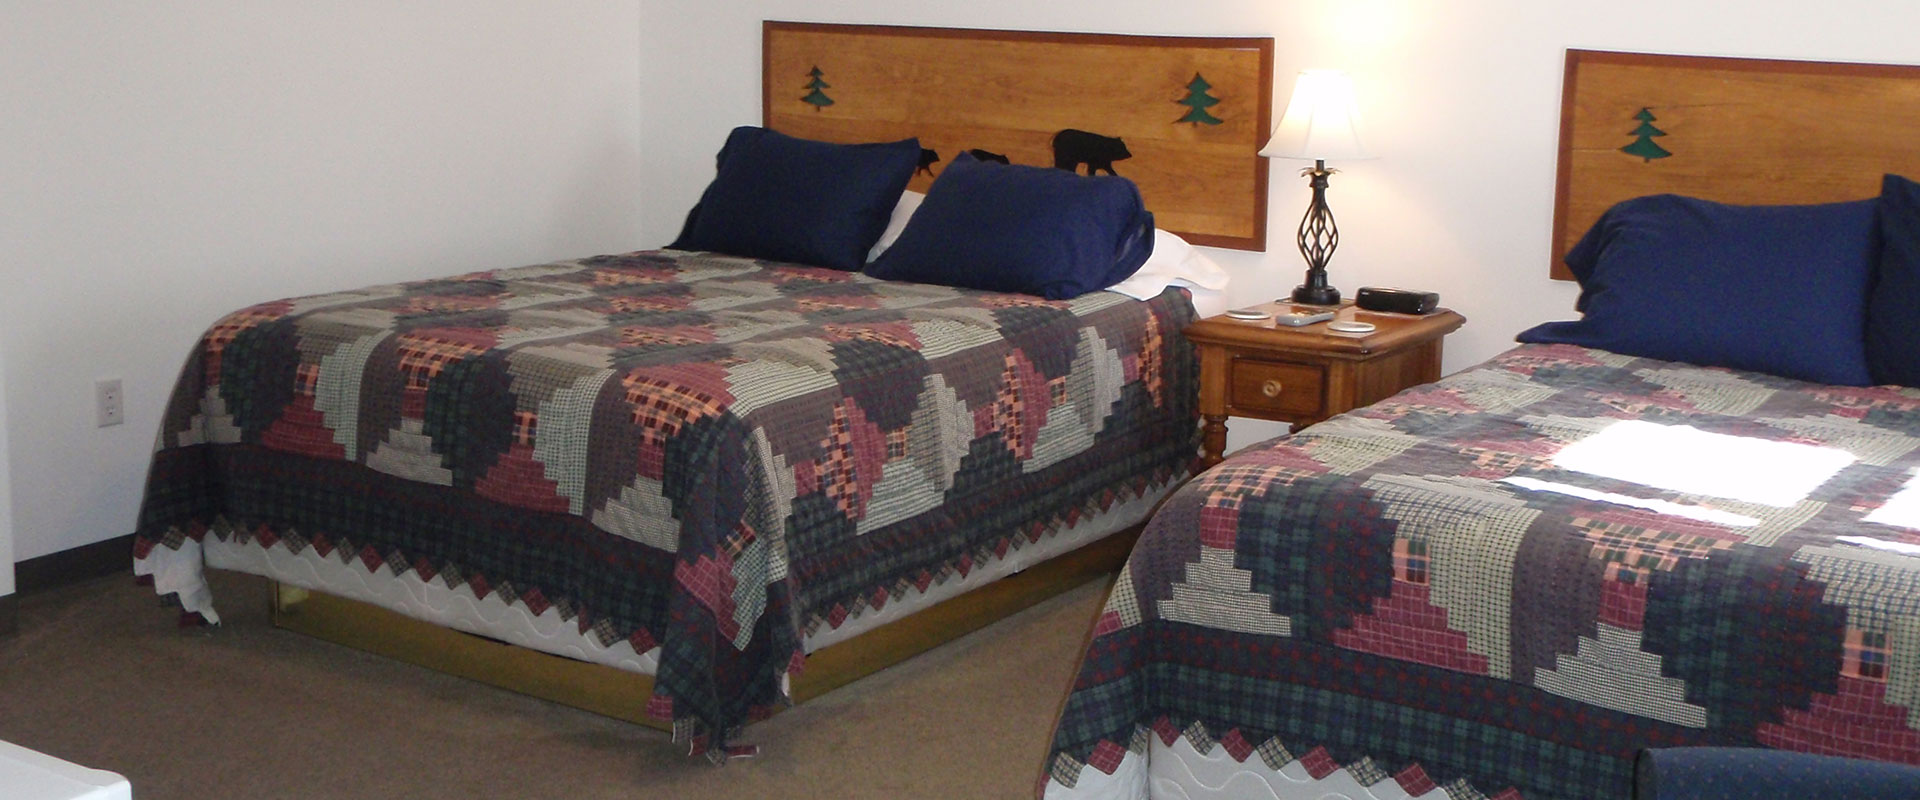 Bear Paw Inn: Affordable Hotel Rooms in Mars Hill, ME